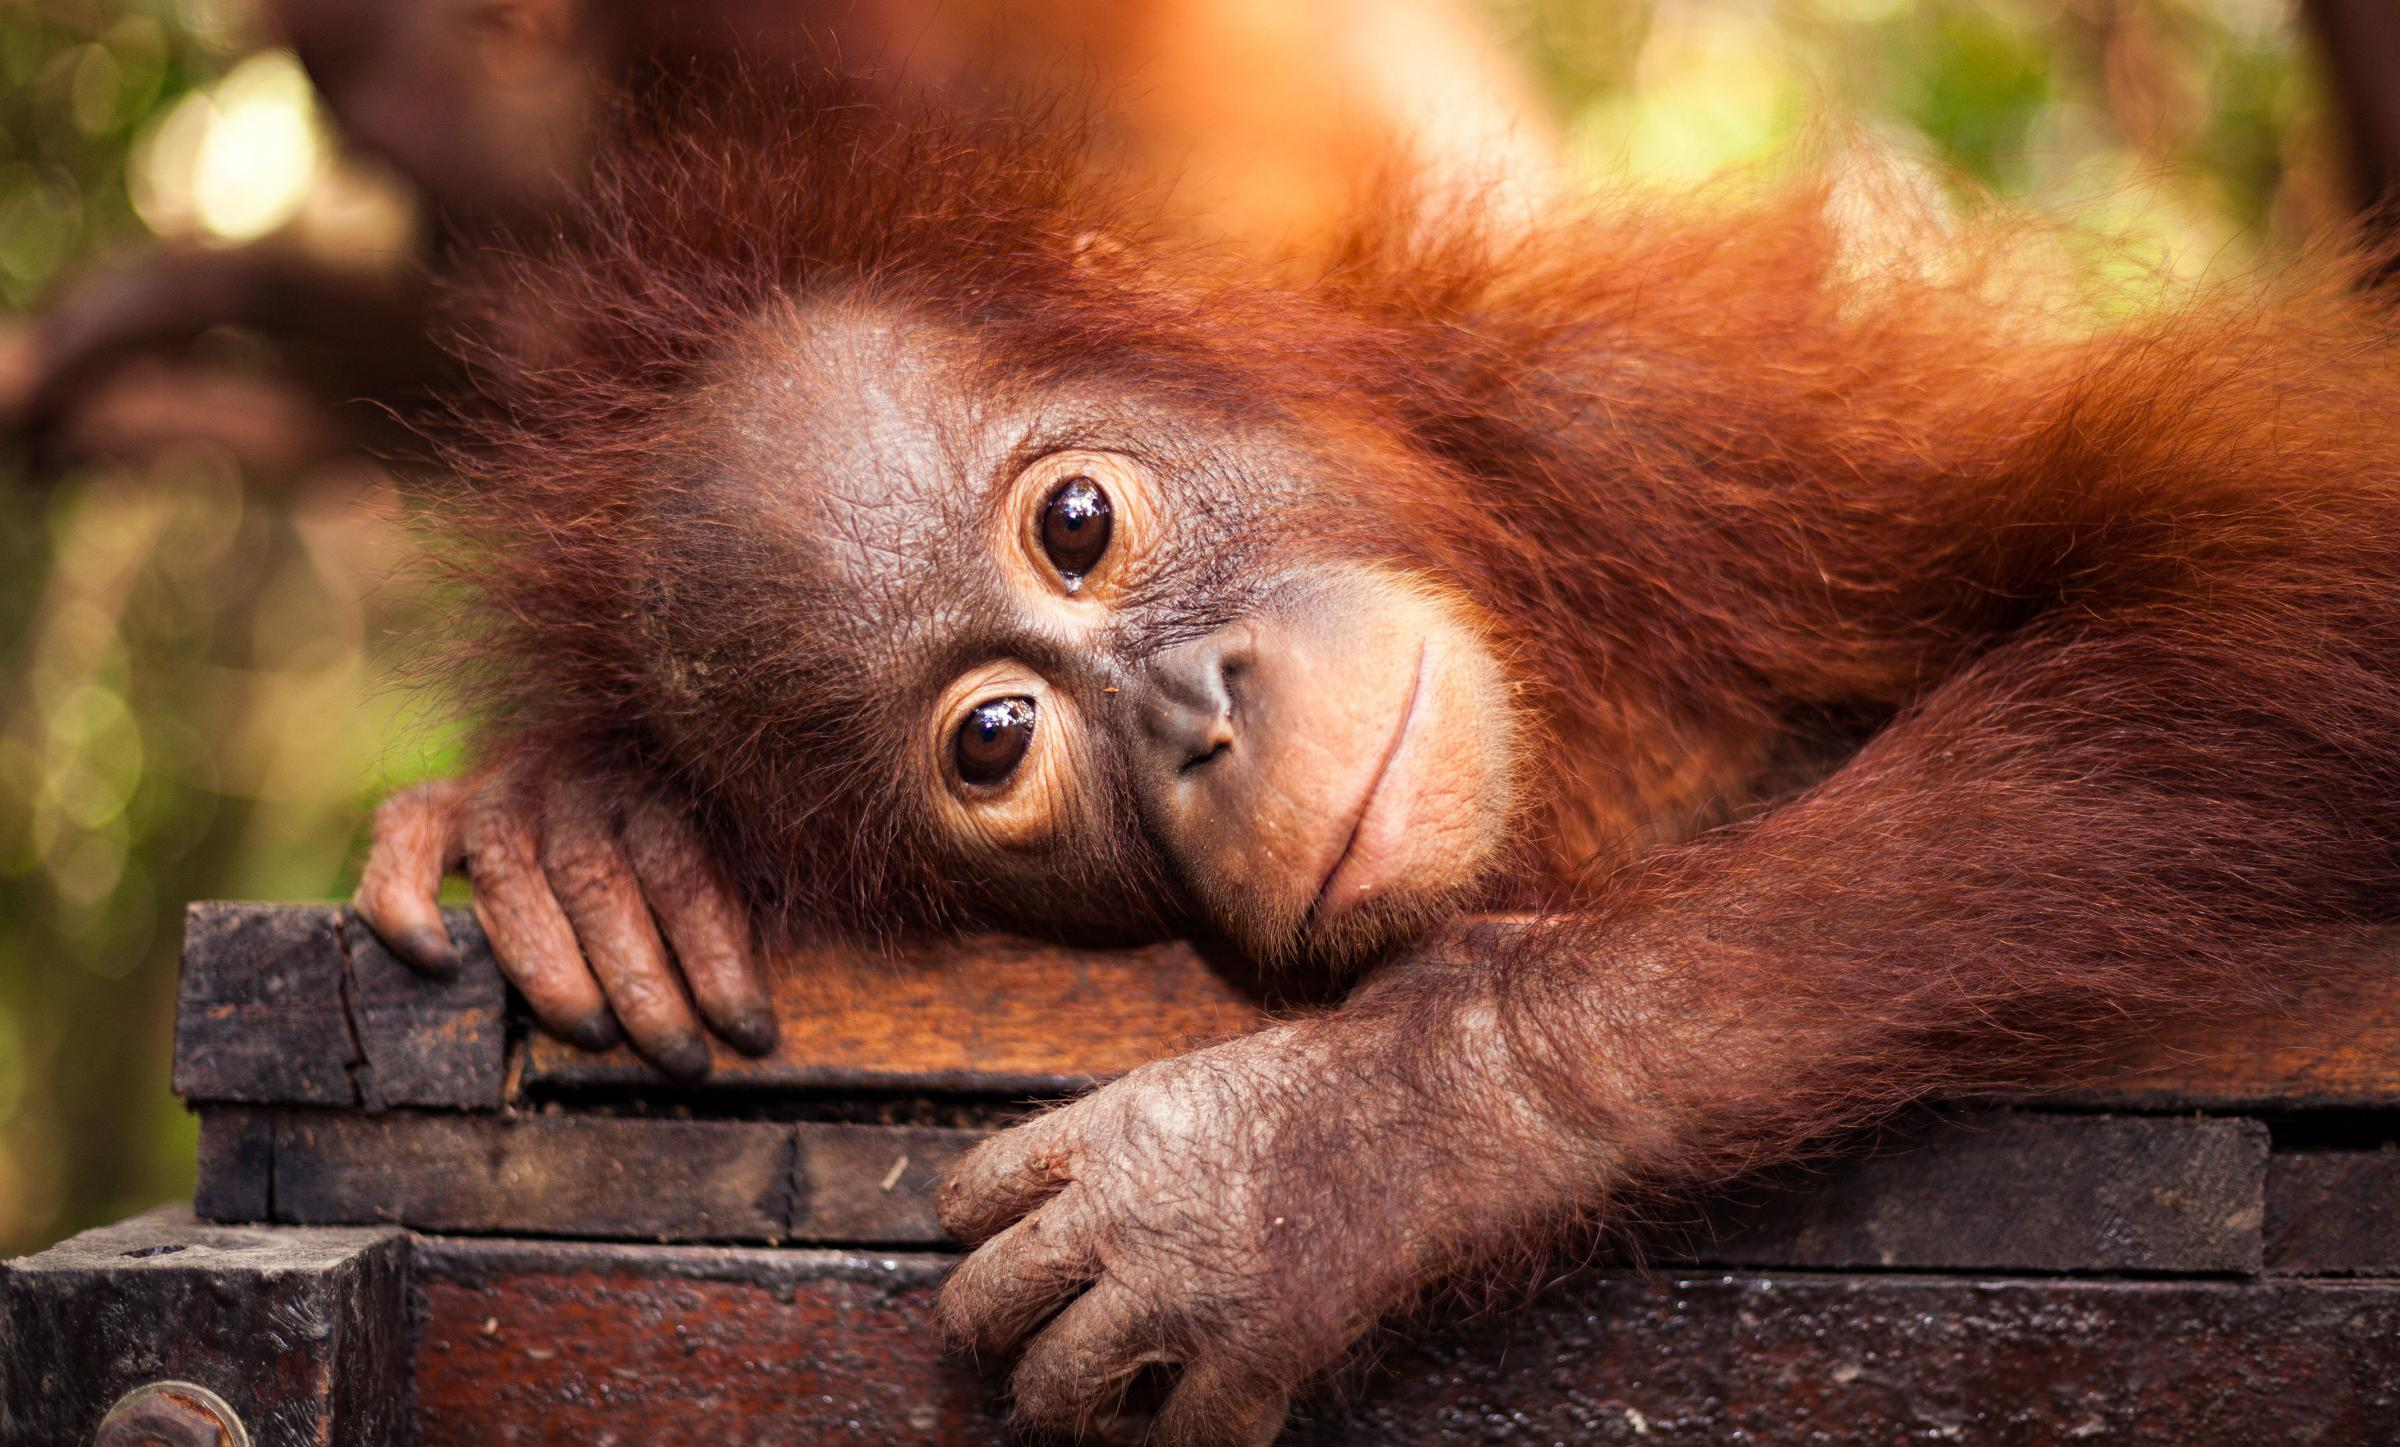 On the brink: the orangutan